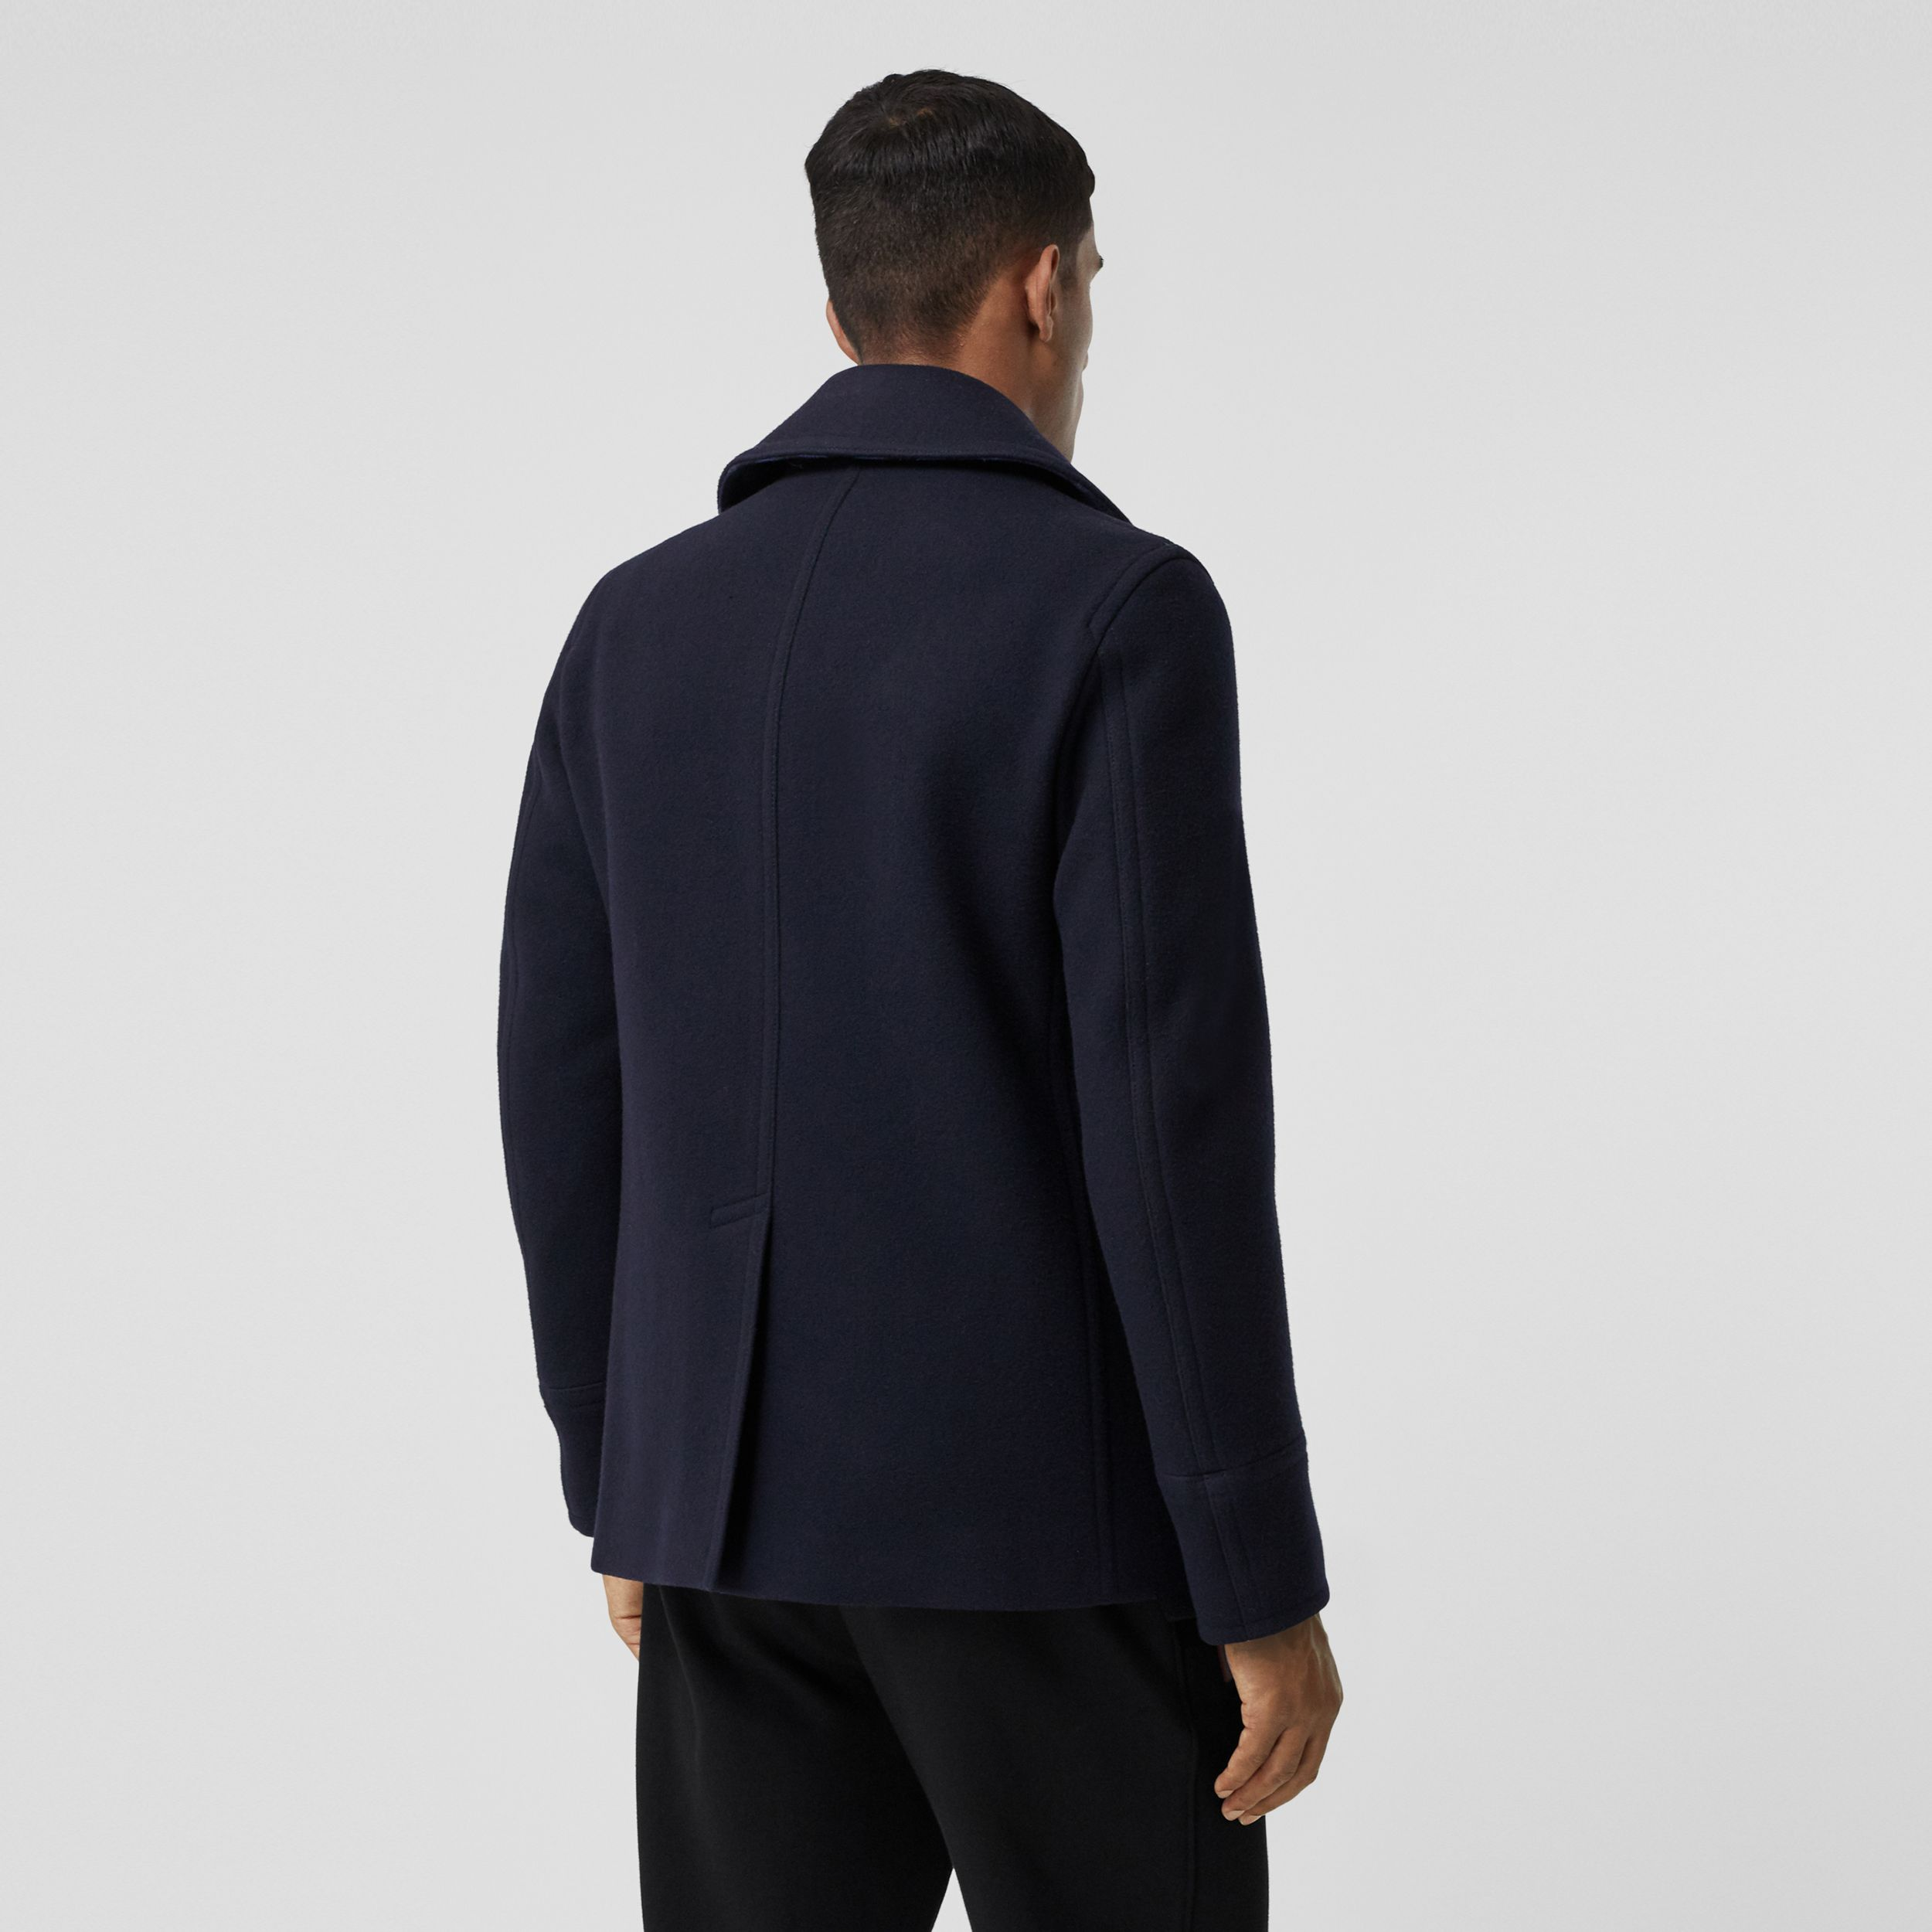 Wool Blend Pea Coat in Navy - Men | Burberry United States - 3